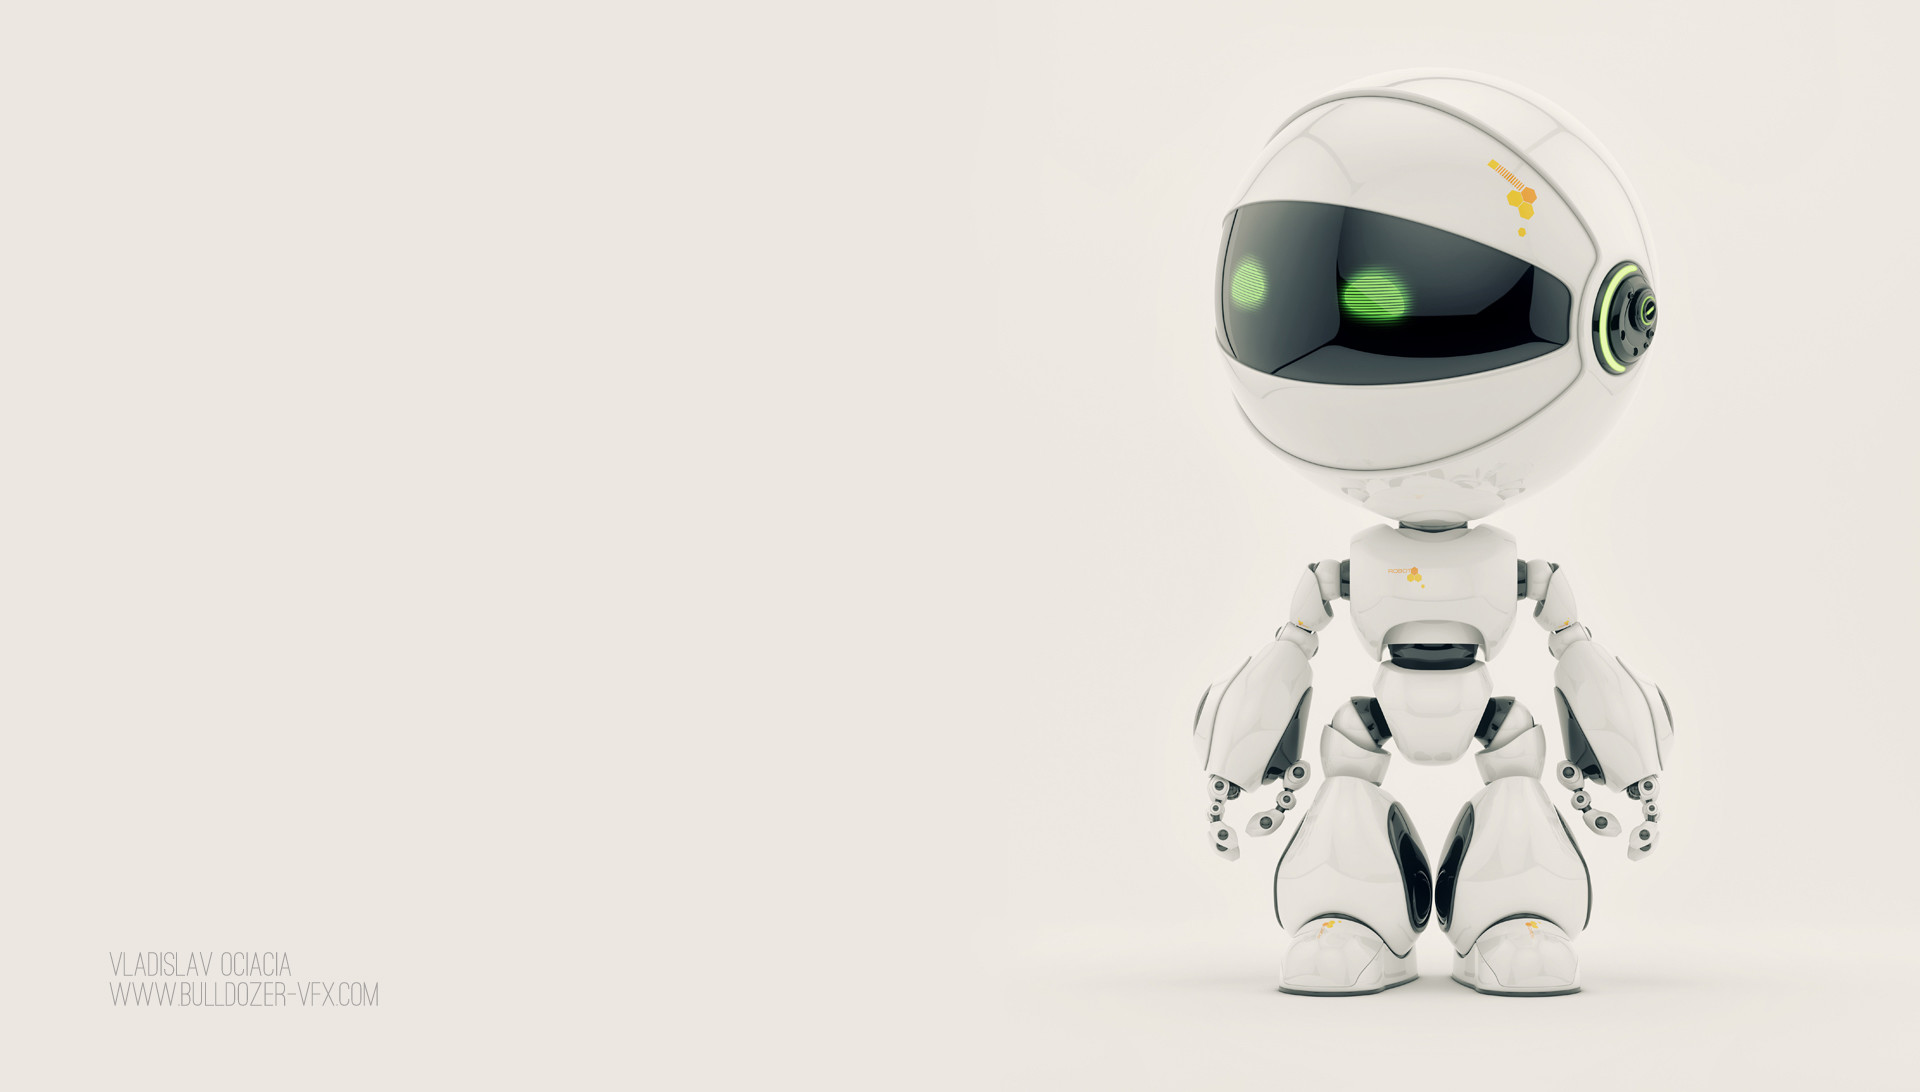 Cute Robot Wallpaper 71 Images